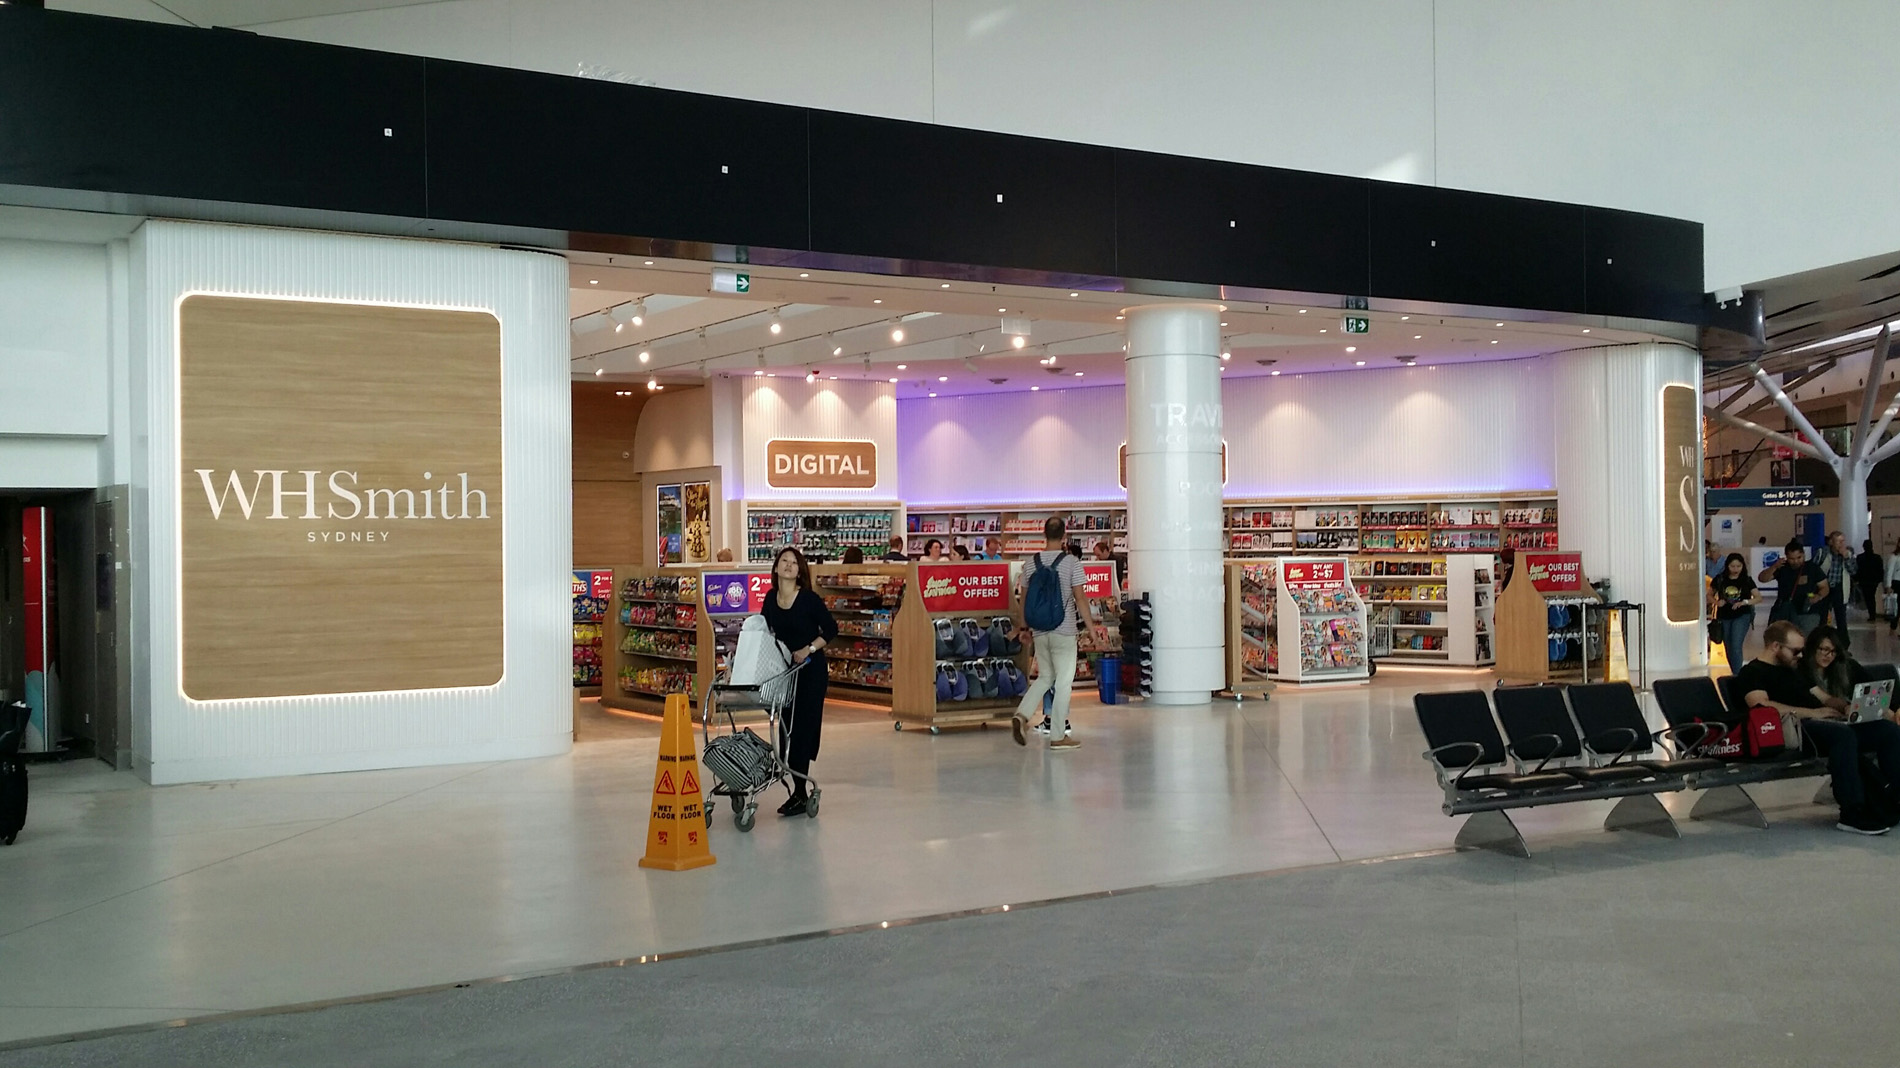 Sydney Airport Shops Cassign Wh Smith Sydney Airport